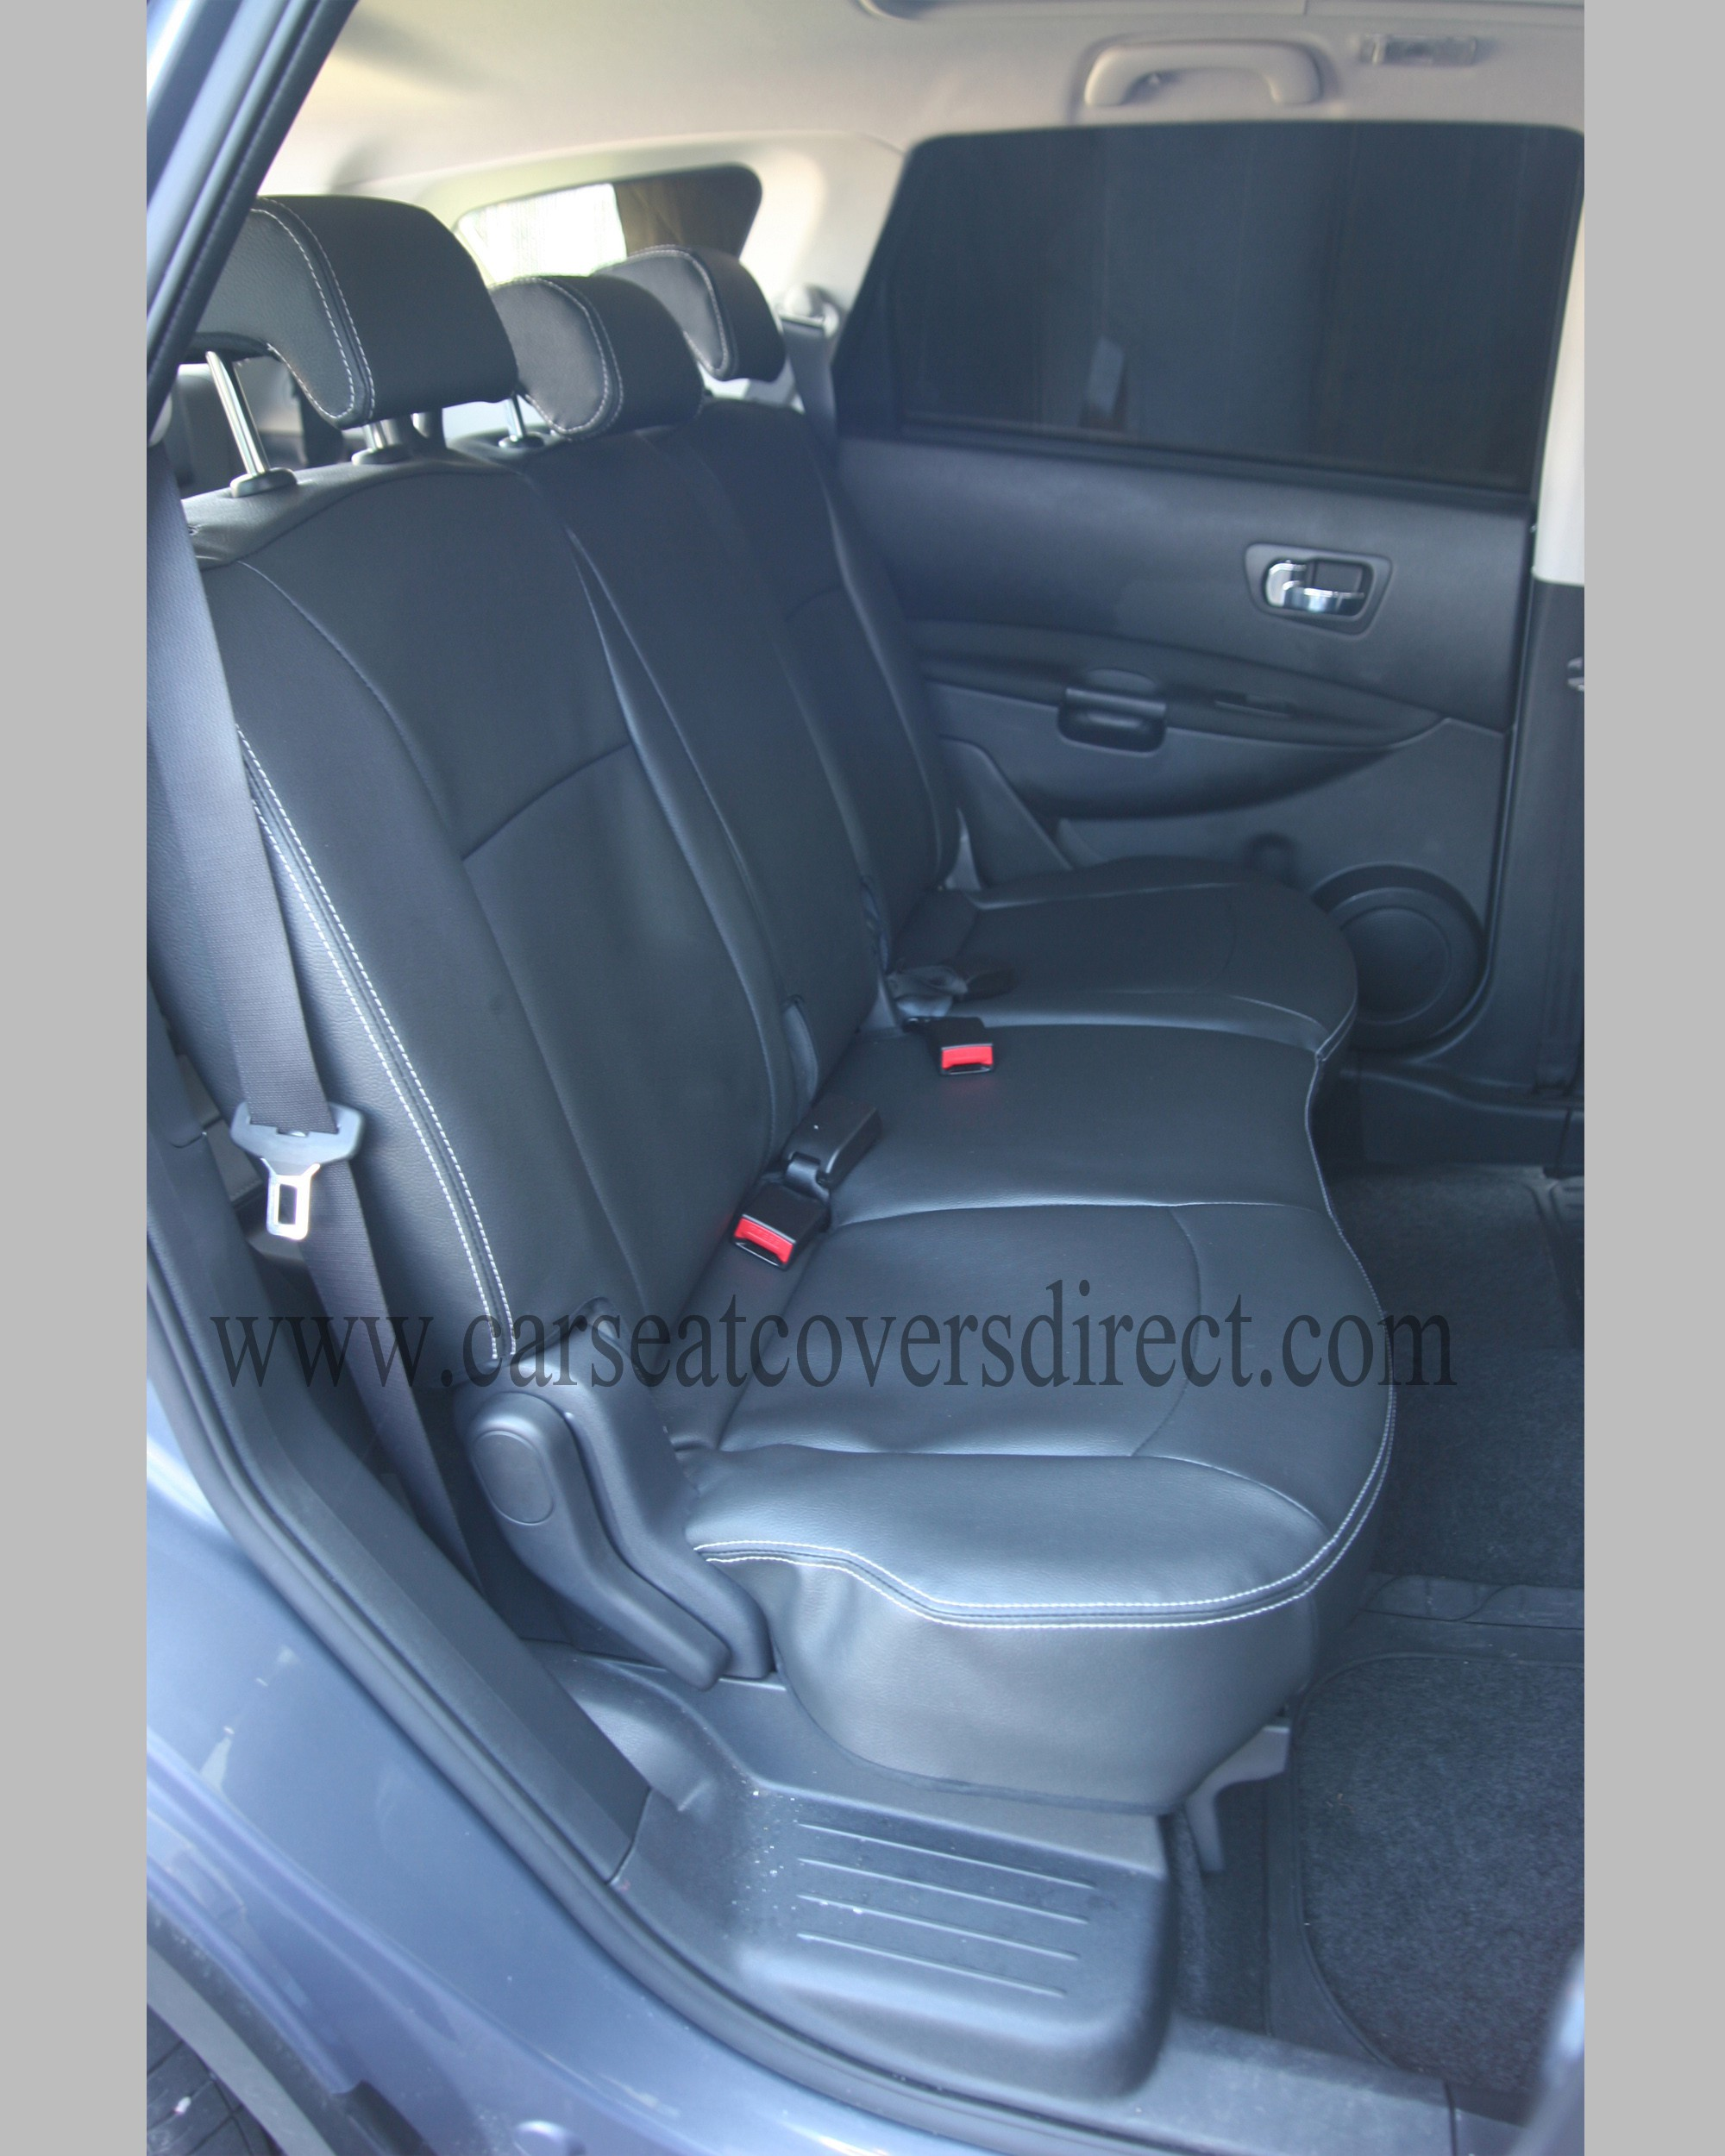 nissan qashqai  seater seat covers car seat covers direct tailored   choice